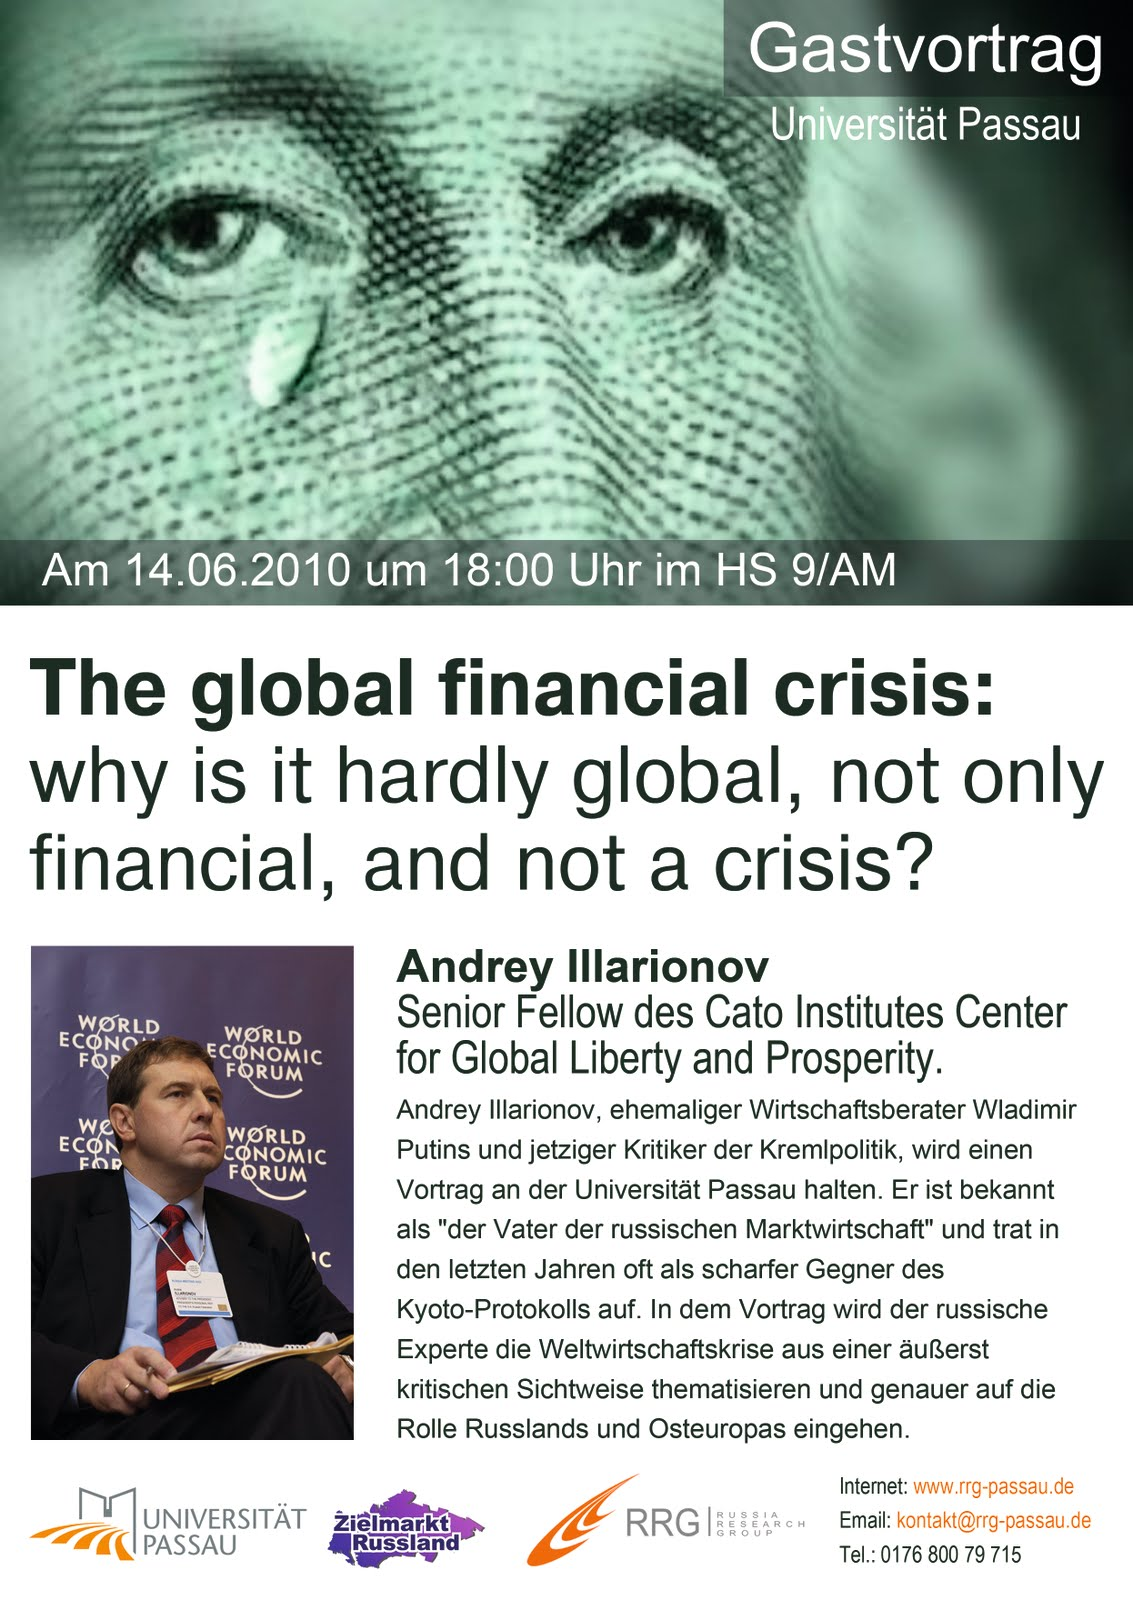 the global financial crisis and the Almost two years ago, the global economy and financial system entered a severe crisis the incidence and ramifications of the crisis were obscure.